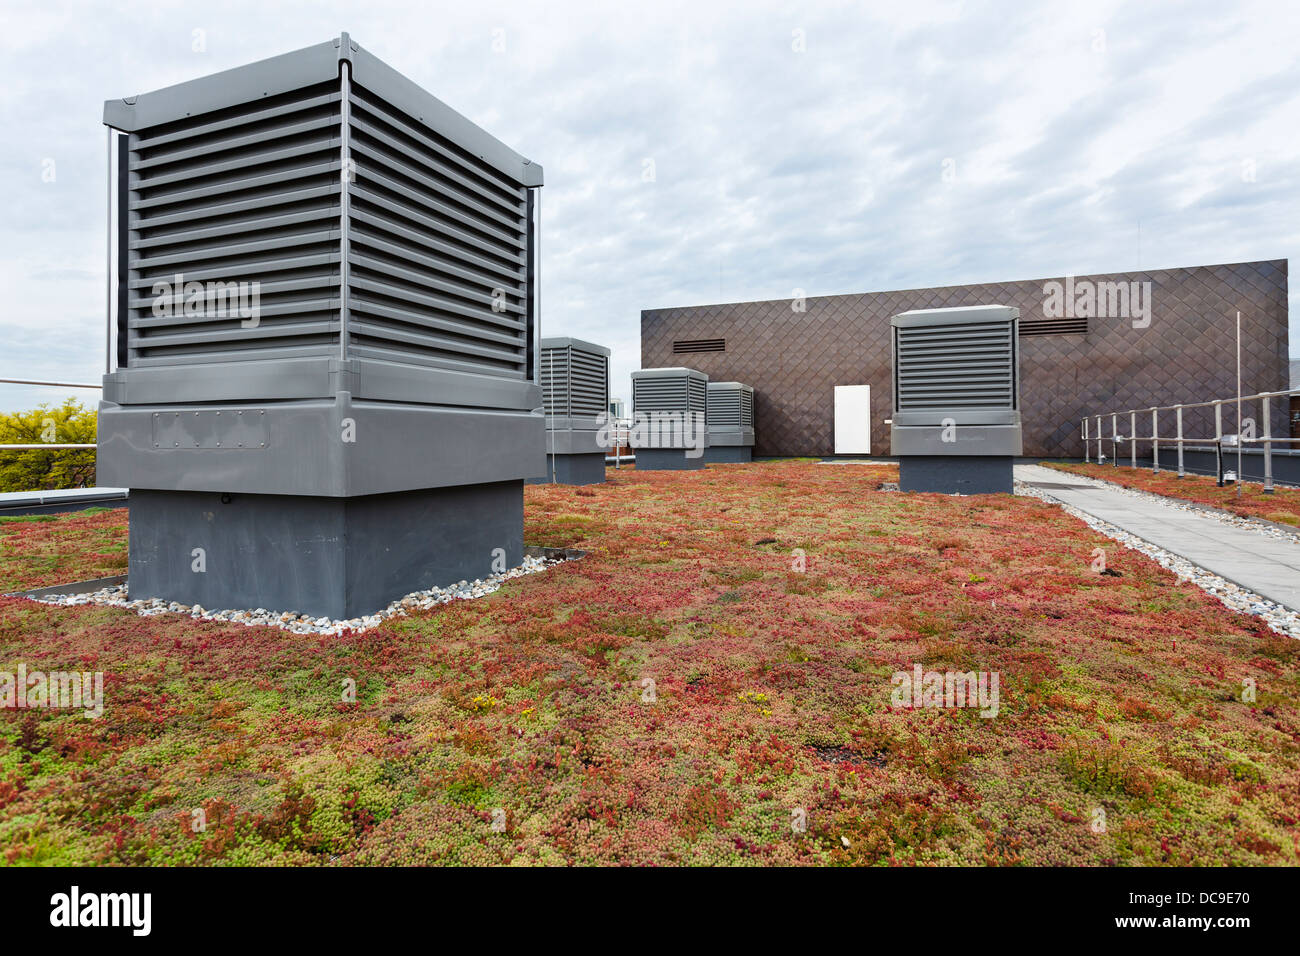 Monodraft louvre ventilation and Sedum green roof on Notting Hill Ealing High School. - Stock Image